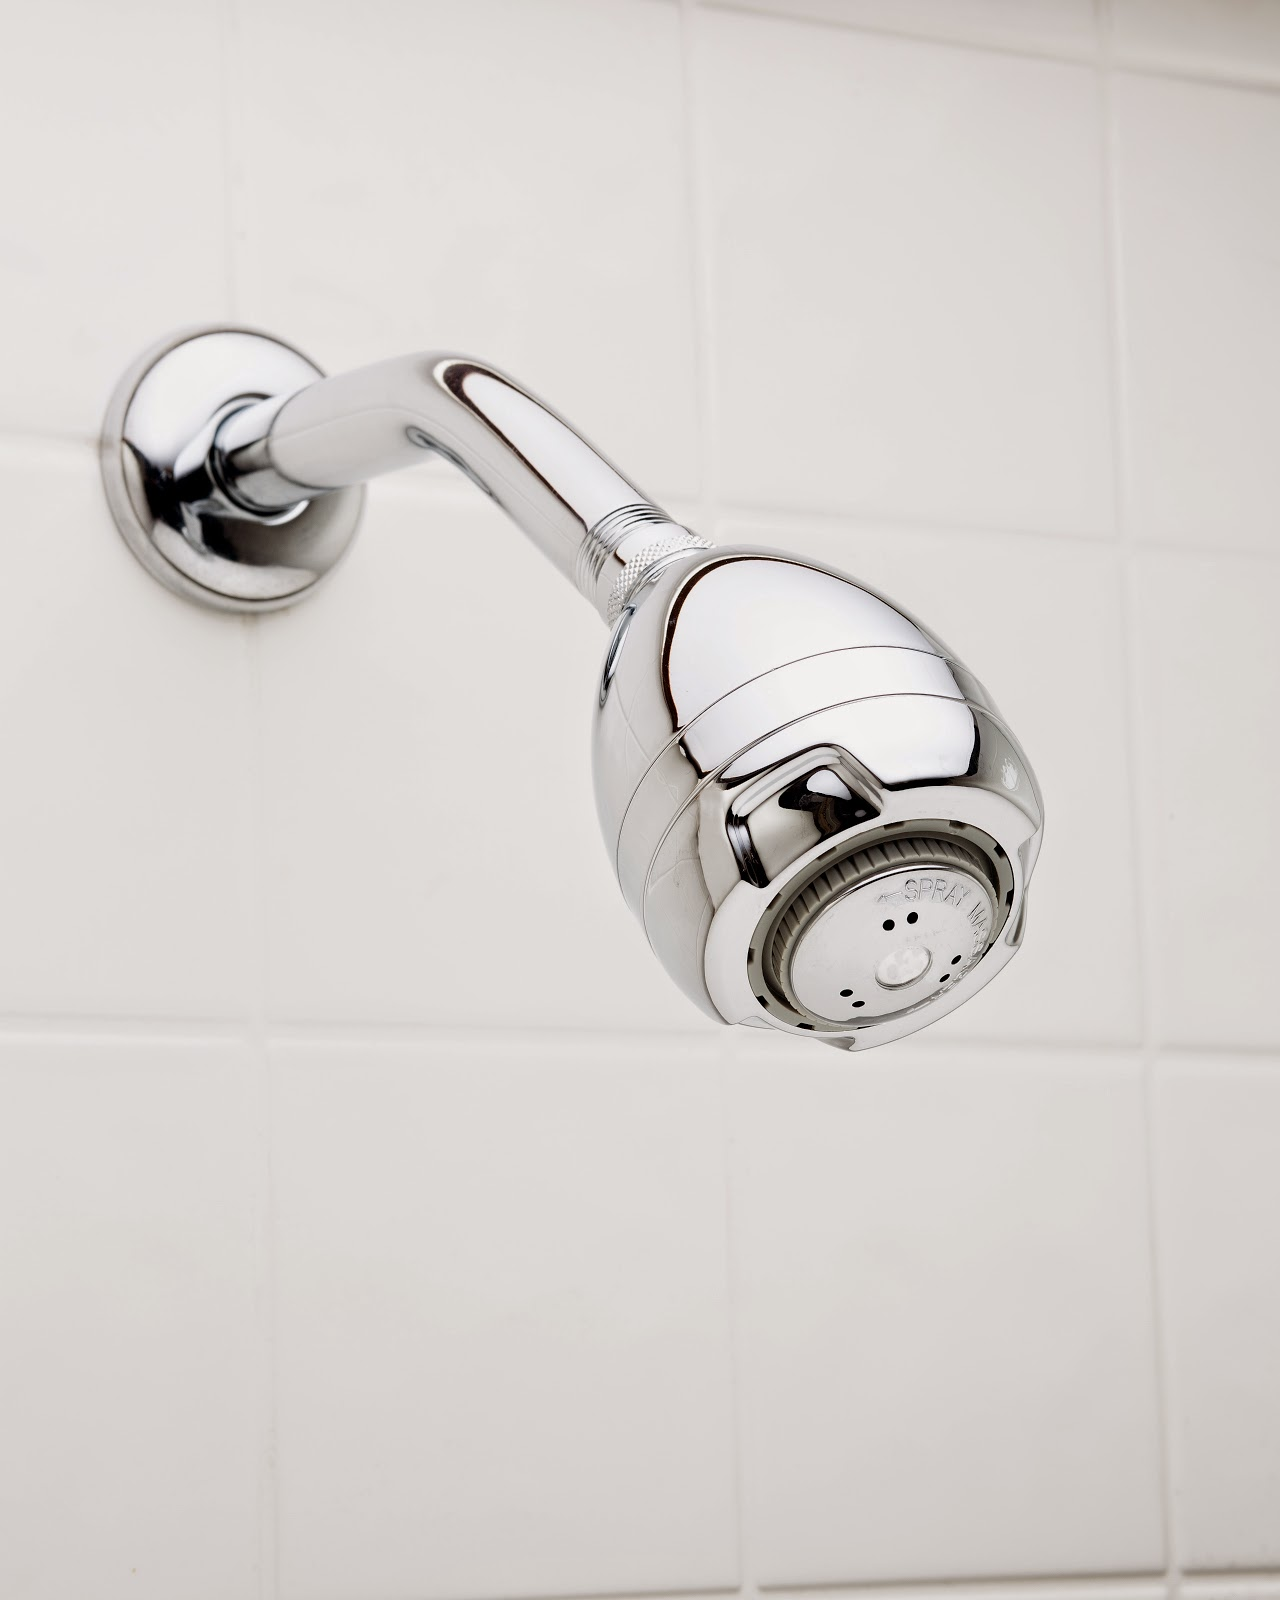 Best Shower Head For Low Water Pressure Fire Hydrant Spa Series A Guide To The Best High